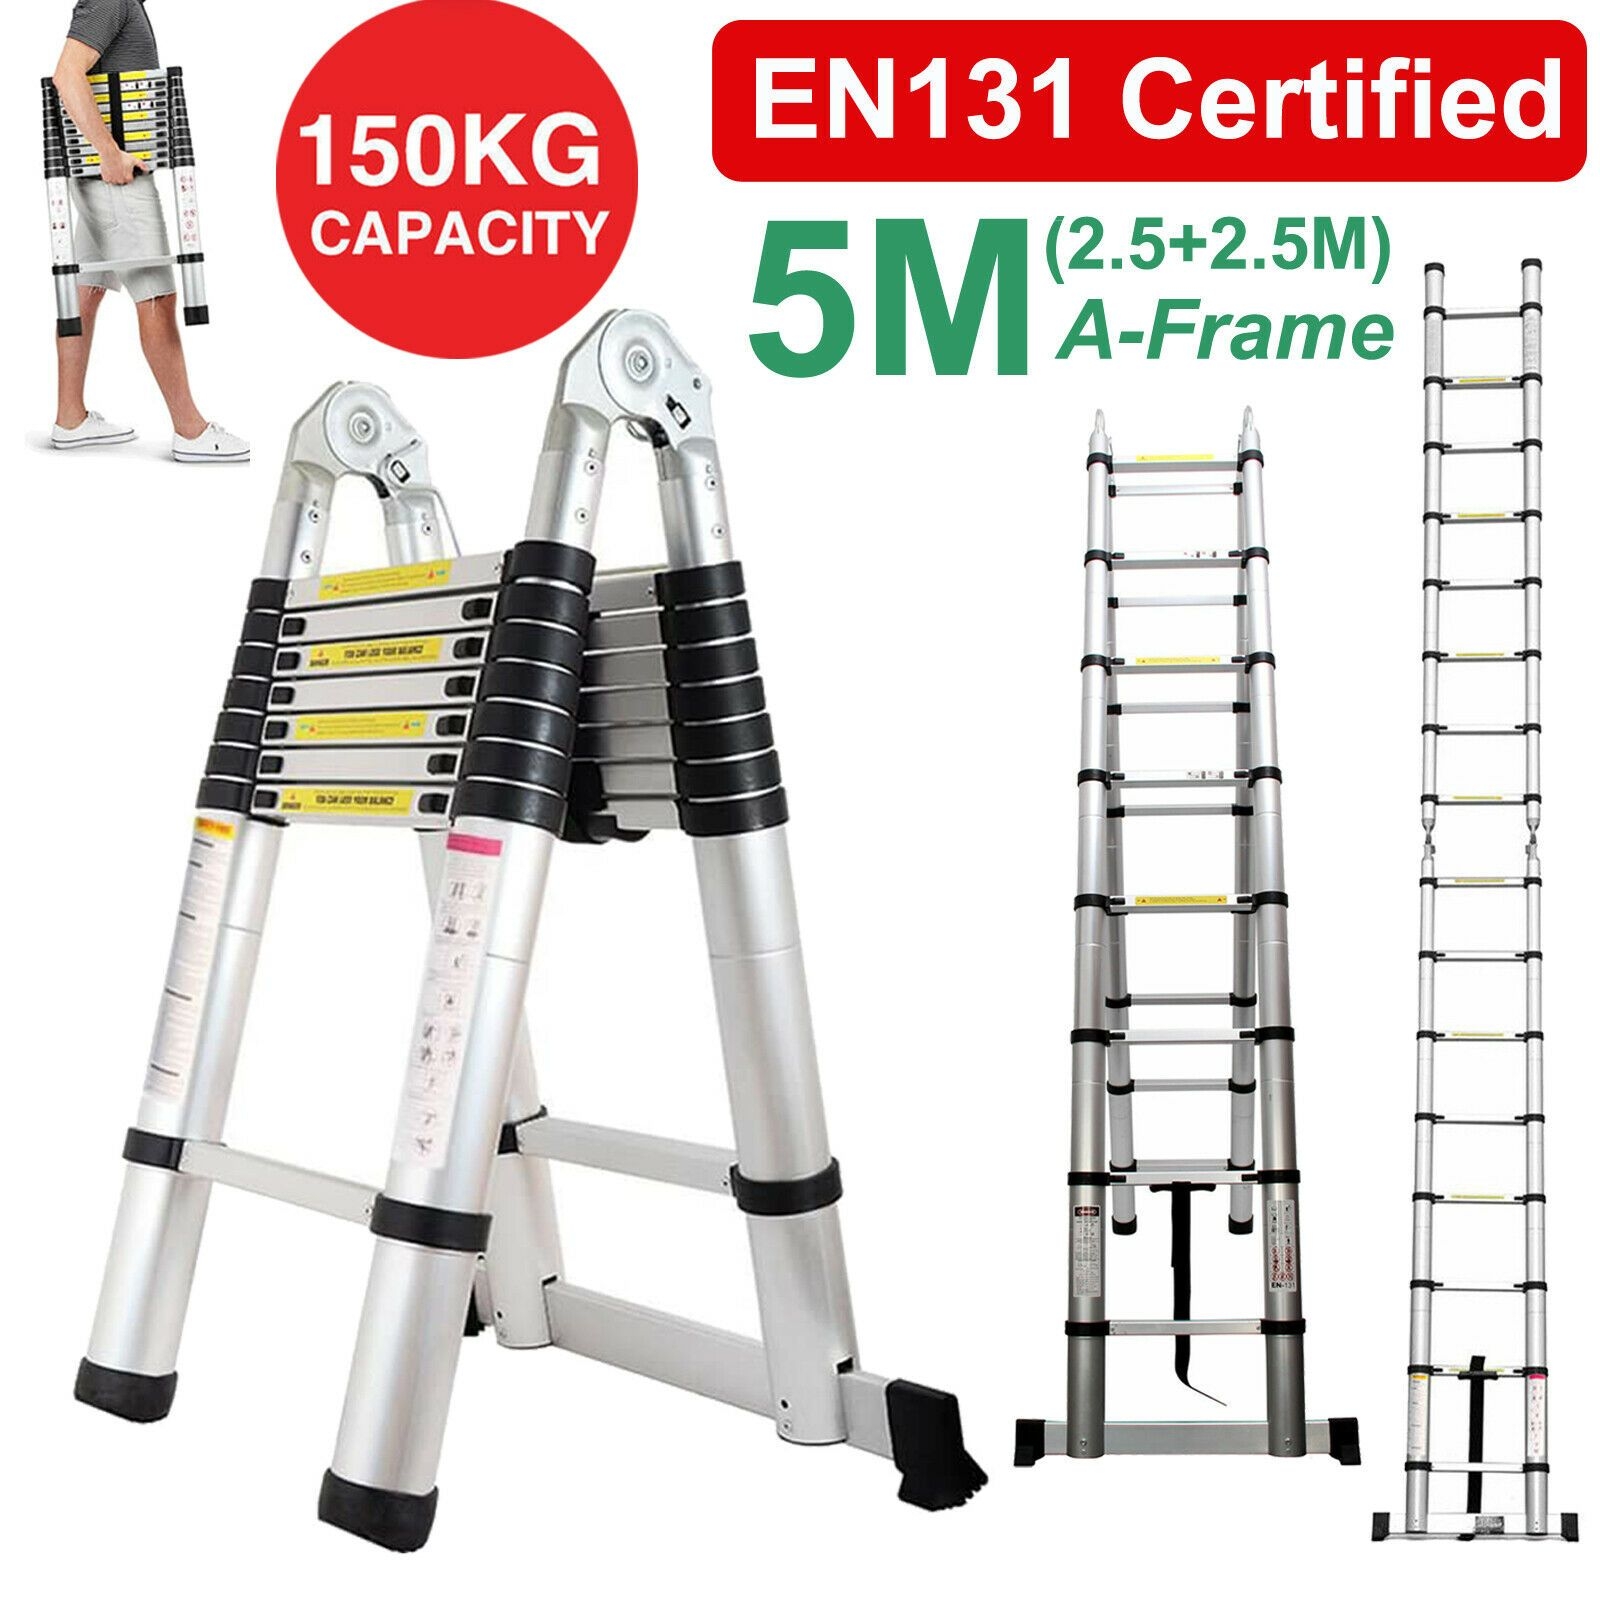 5m Folding Ladder 16 5ft Multi Purpose Telescopic Extension Aluminum Heavy Duty Ladder Decor Ladderdecor In 2020 Ladder Decor Ladder Decor